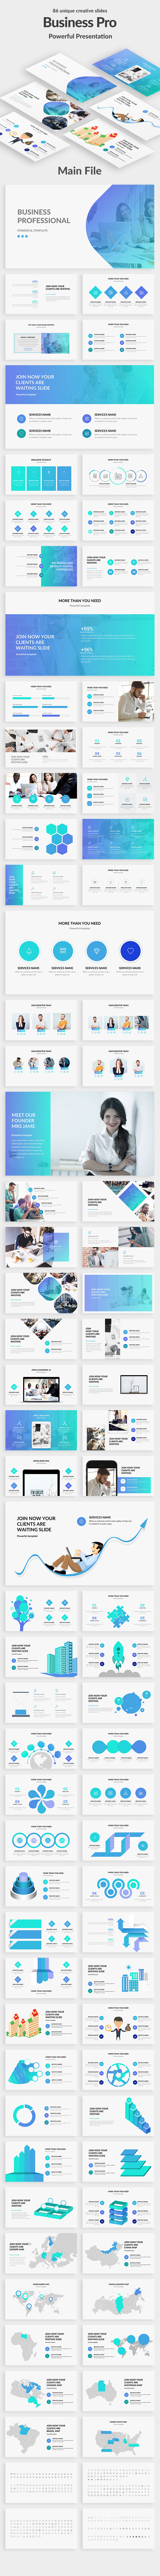 Business Professional Google Slide Template - Google Slides Presentation Templates